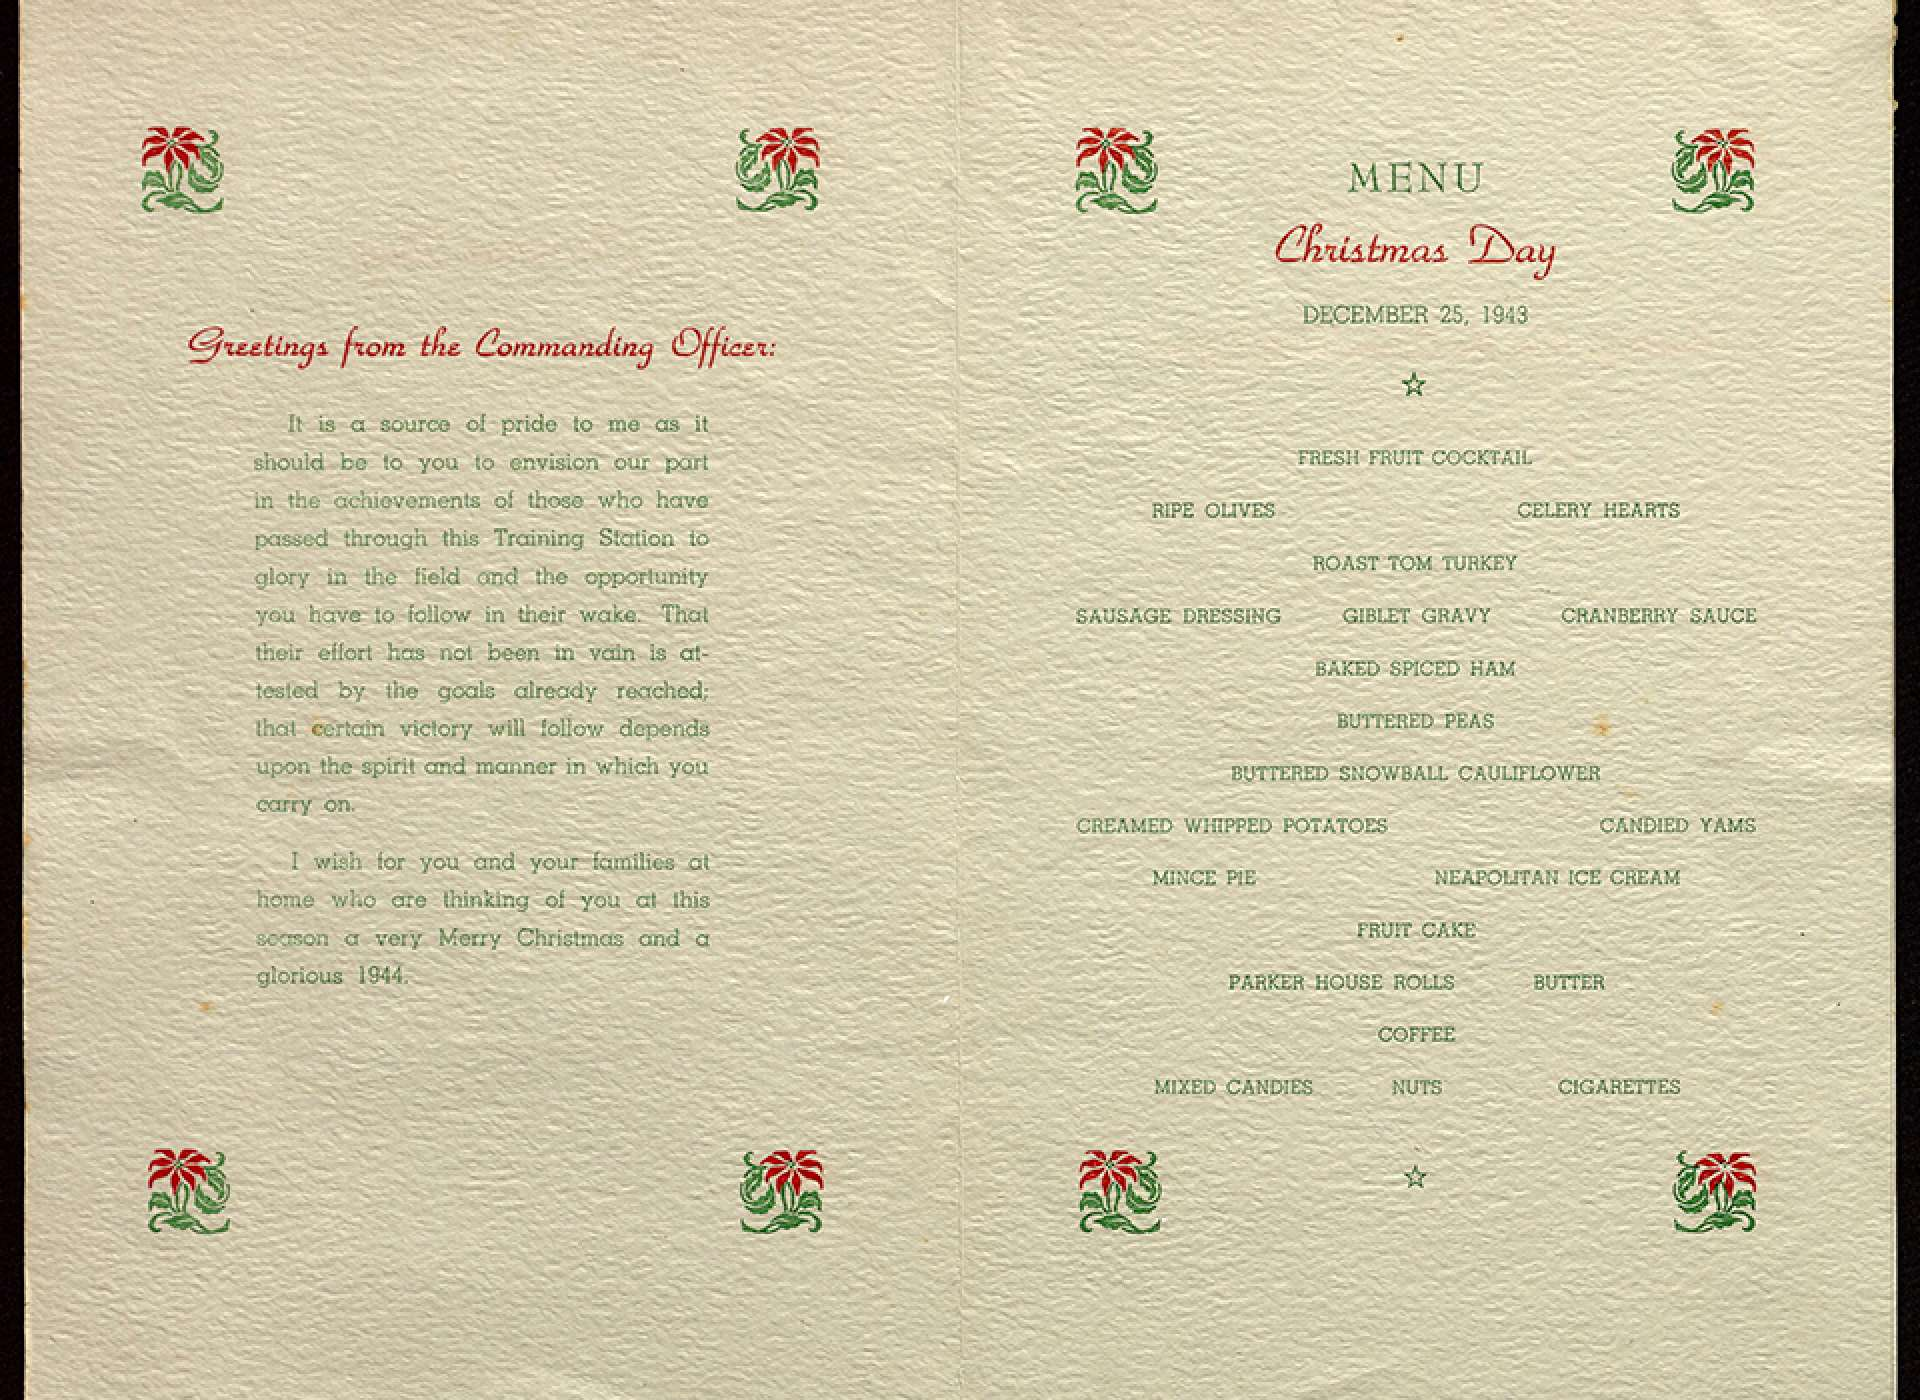 1943 Christmas Menu from the US Naval Training Station, San Diego. Gift of Suzanne Davis Gillespie, 2008.215.010